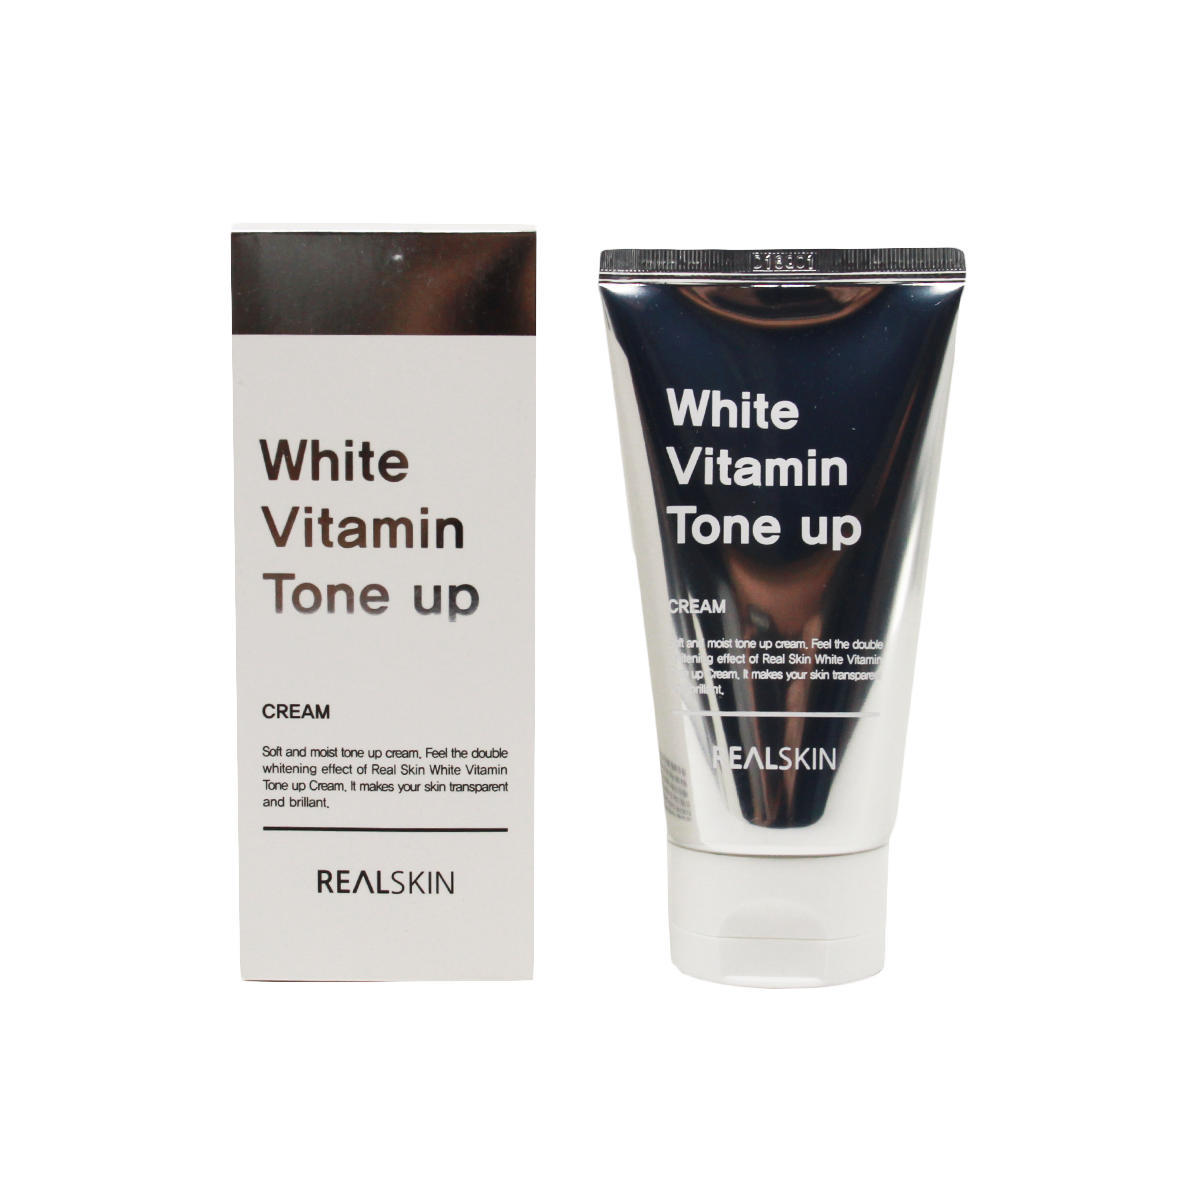 Кремы Крем для лица Realskin White Vitamin Tone-Up Cream, 100 мл import_files_0d_0d5ff2705b2b11e980fb3408042974b1_0d5ff2715b2b11e980fb3408042974b1.jpg